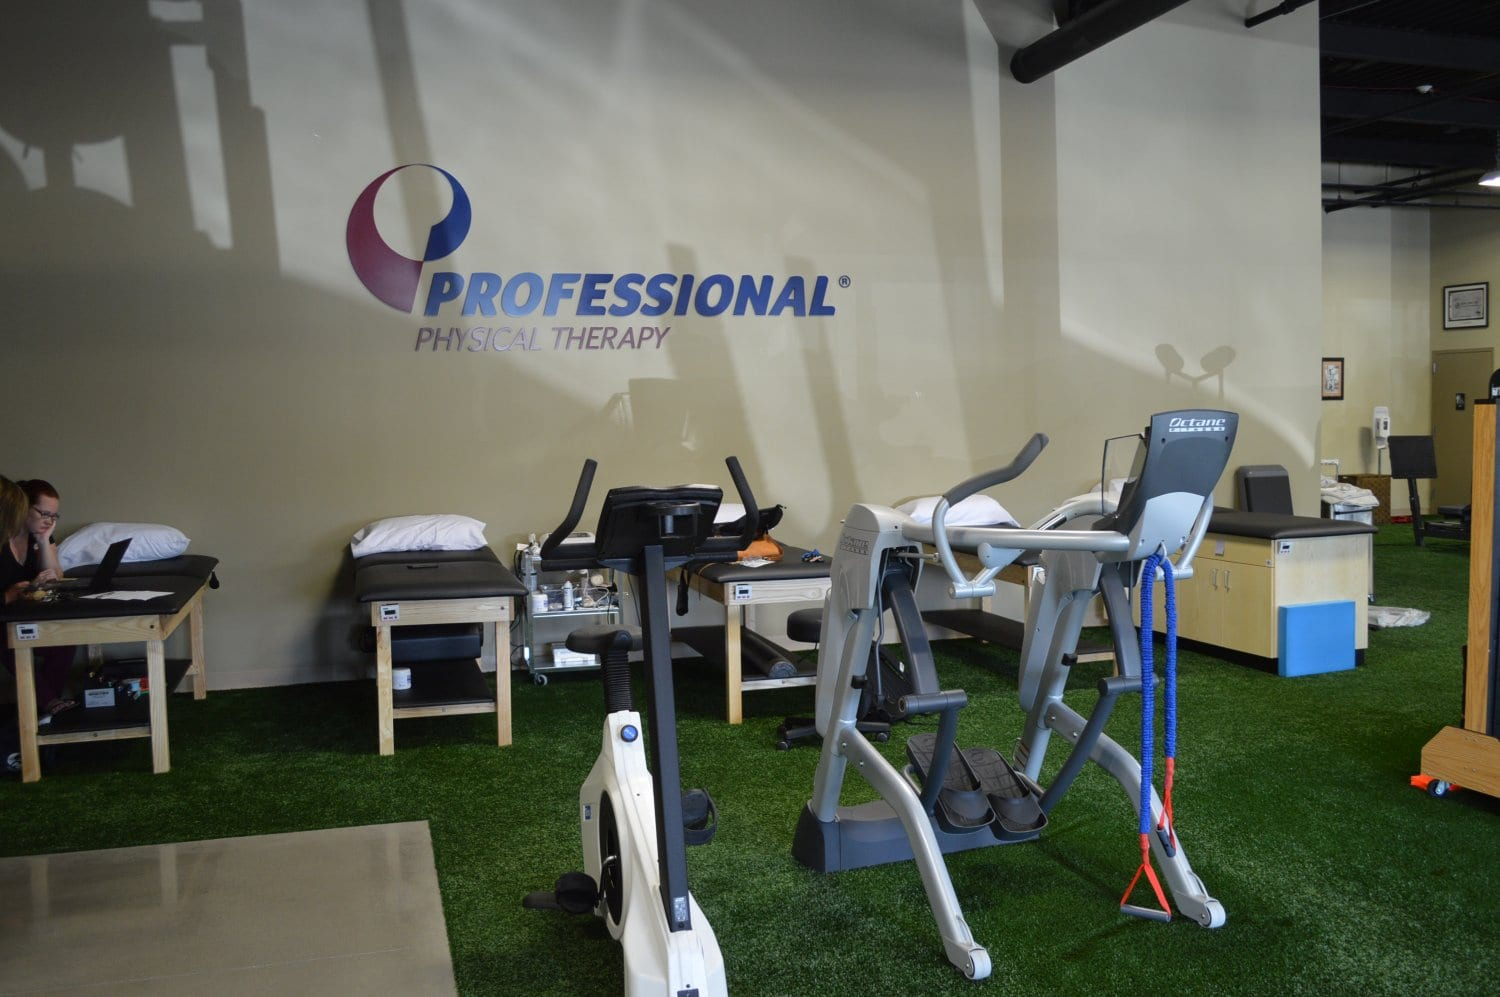 This is an image of our physical therapy clinic in Syosset, New York.